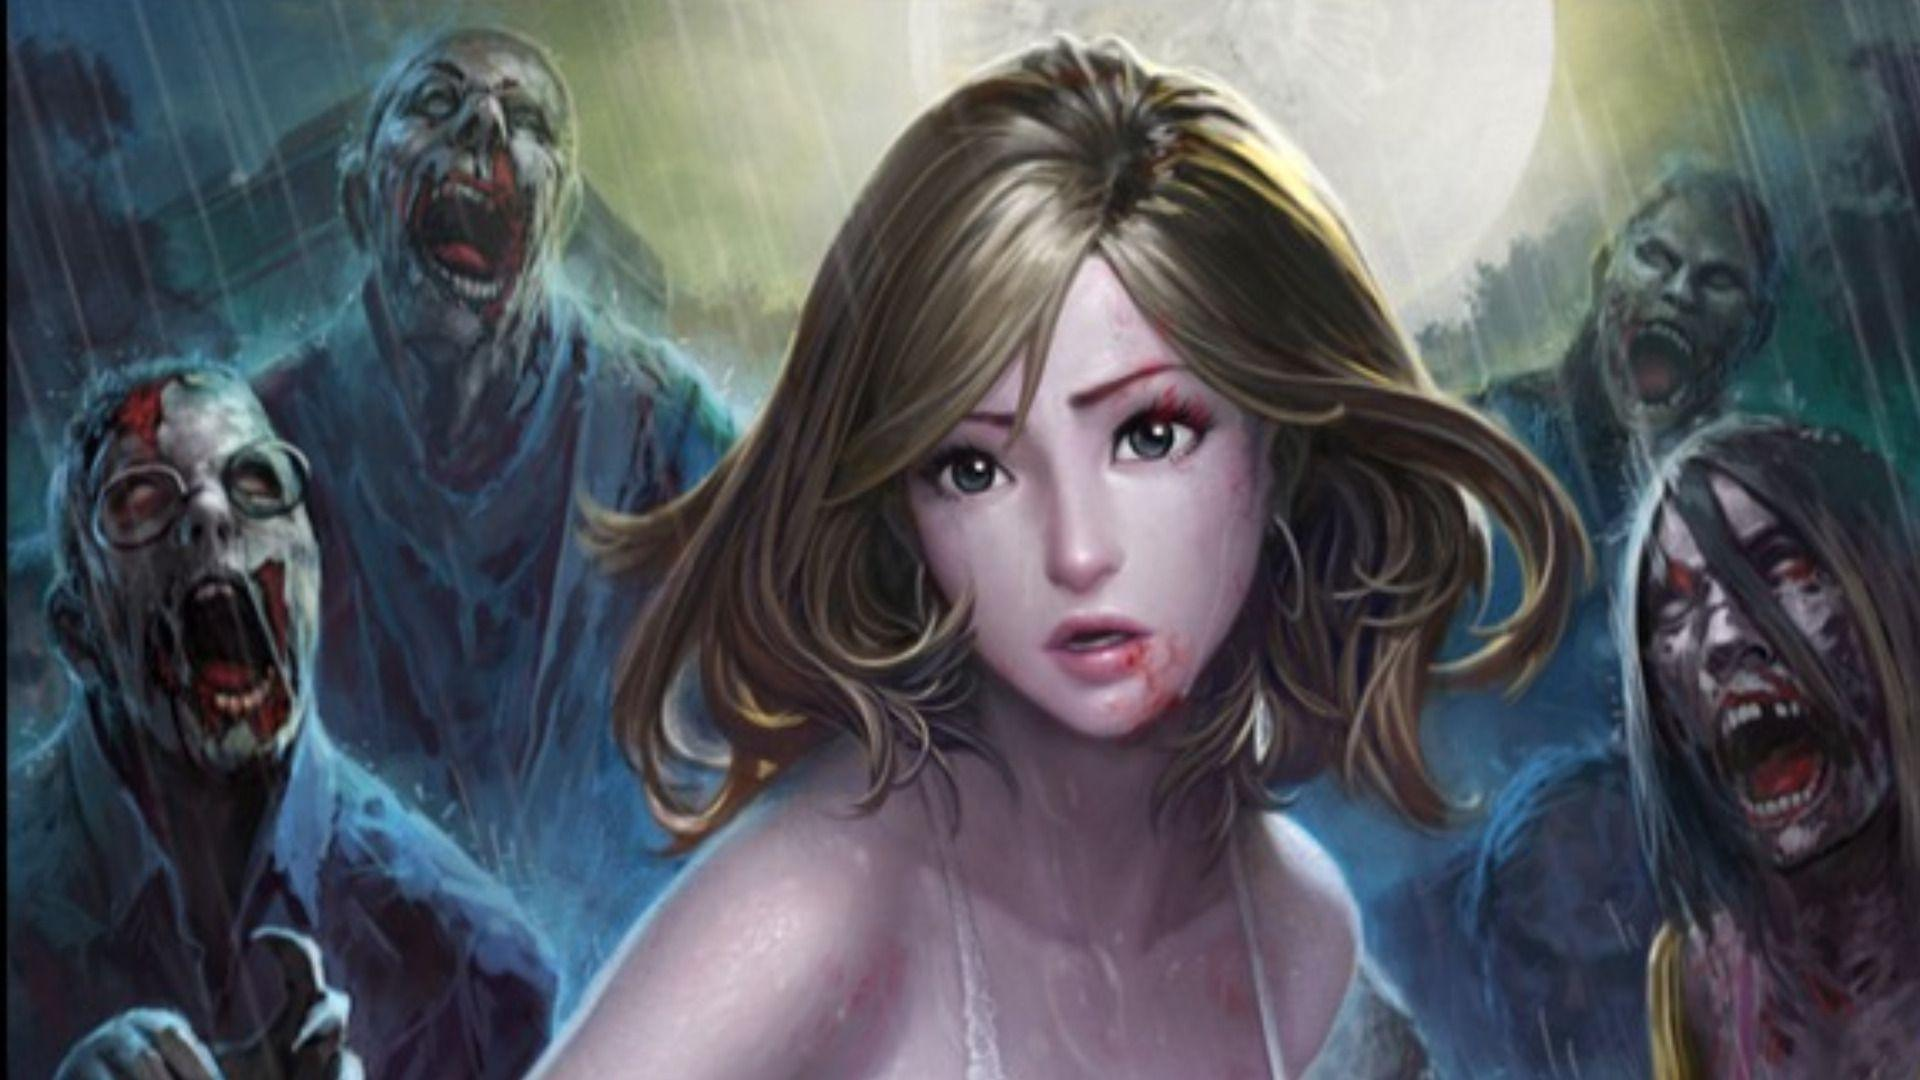 Zombie Wallpapers 1920x1080 - Wallpaper Cave